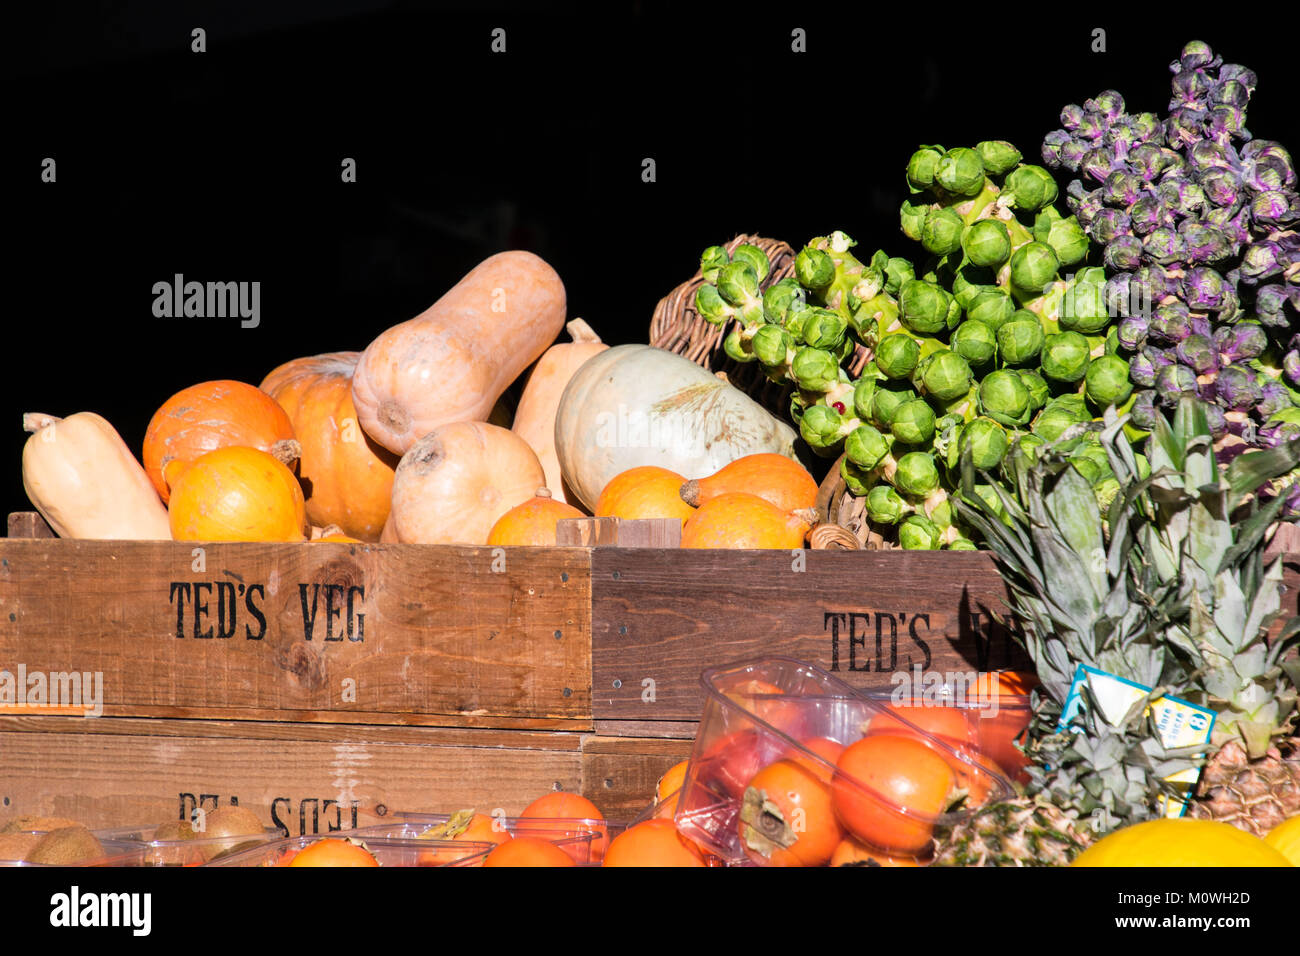 Vegetables in Boroughs 's Market London, England - Stock Image